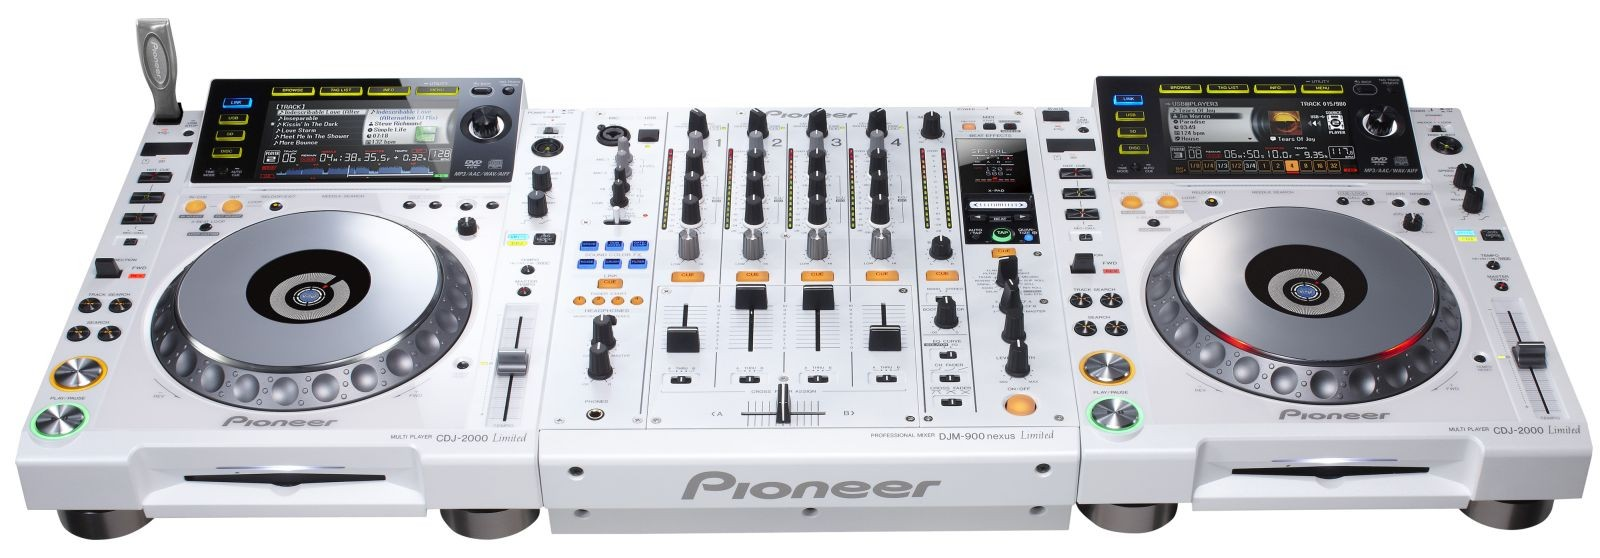 djm 900 nexus 2 latest firmware